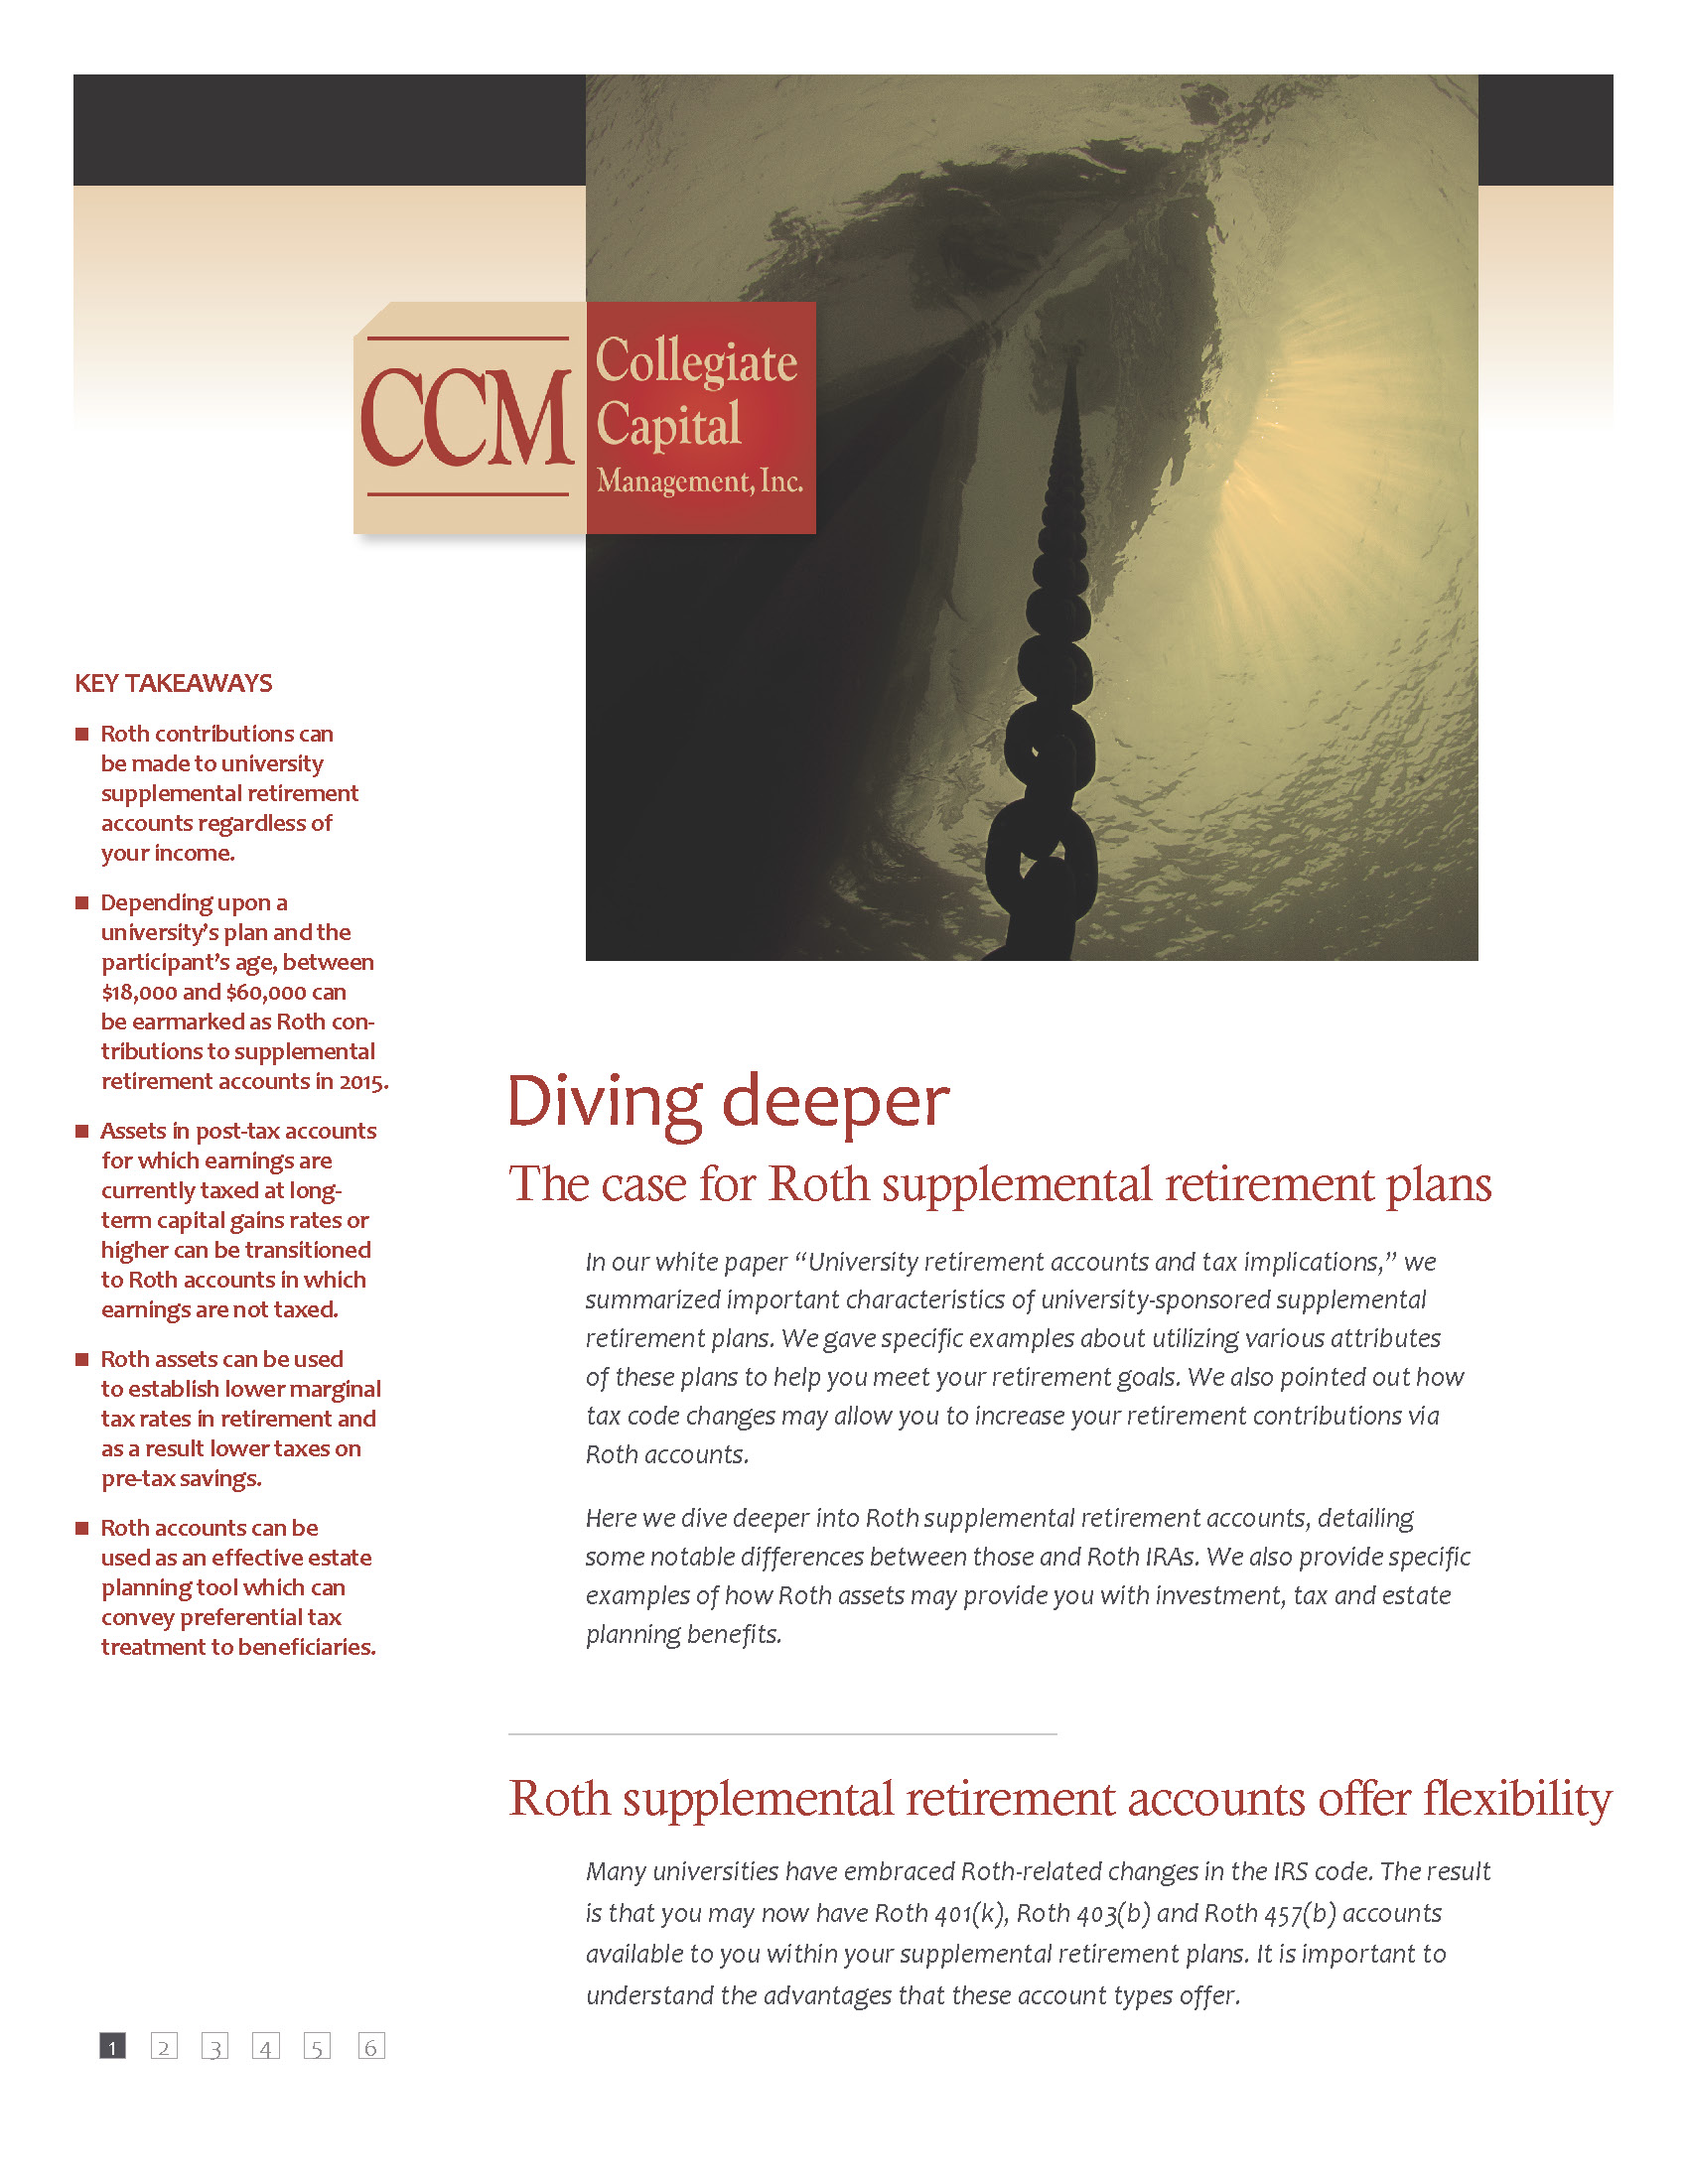 White Paper: Diving Deeper- The case for Roth supplemental retirement plans